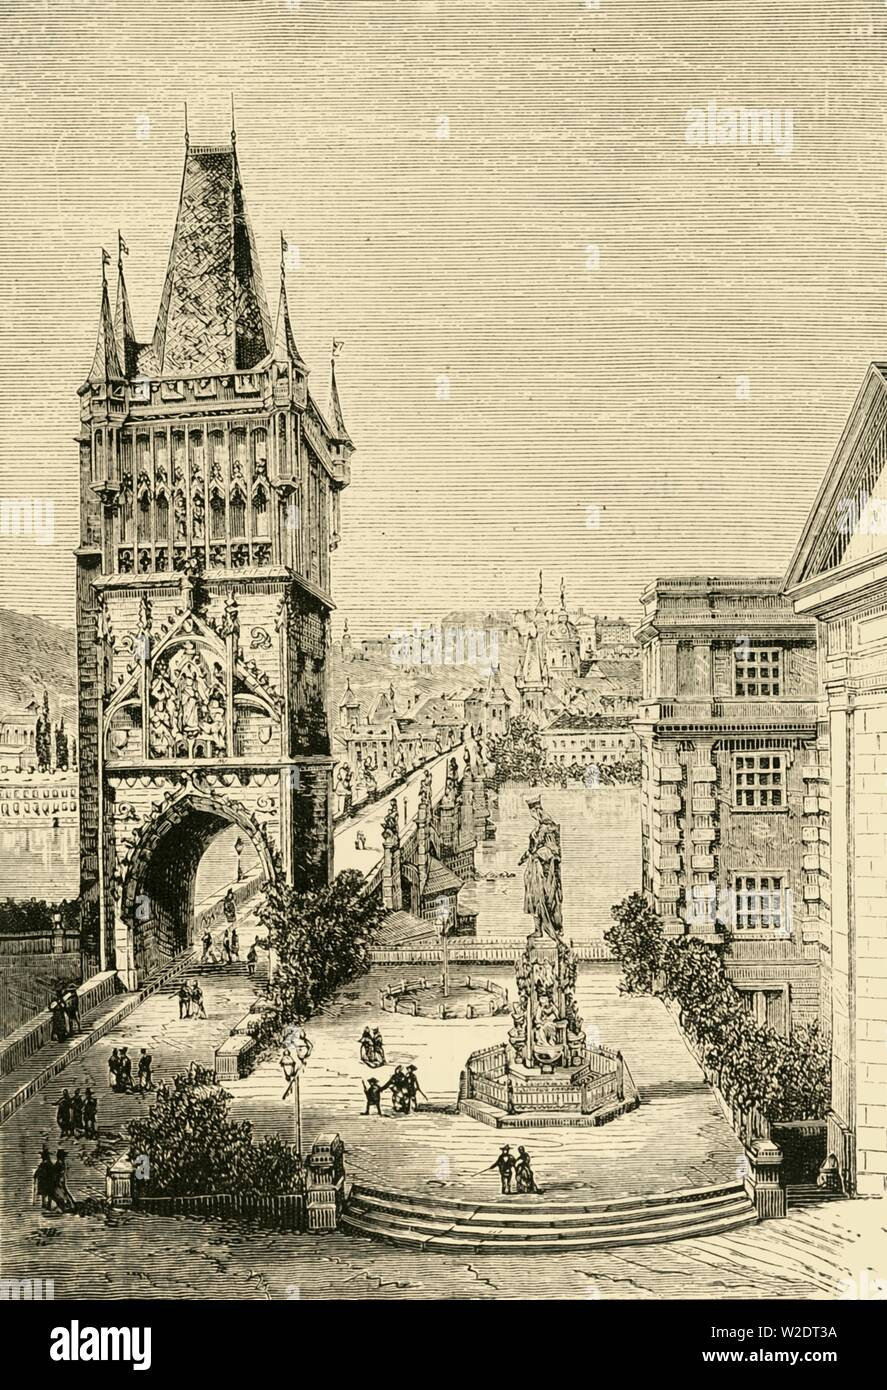 """'View in Prague - The bridge Tower', 1890.  Gothic monument on the Charles Bridge Prague over the Vltava river in Prague, built late 14th century, under Emperor Charles IV, designed by  Petr Parler.  From """"Cassell's Illustrated Universal History, Vol. III - The Middle Ages"""", by Edmund Ollier. [Cassell and Company, Limited, London, Paris and Melbourne, 1890. ] - Stock Image"""